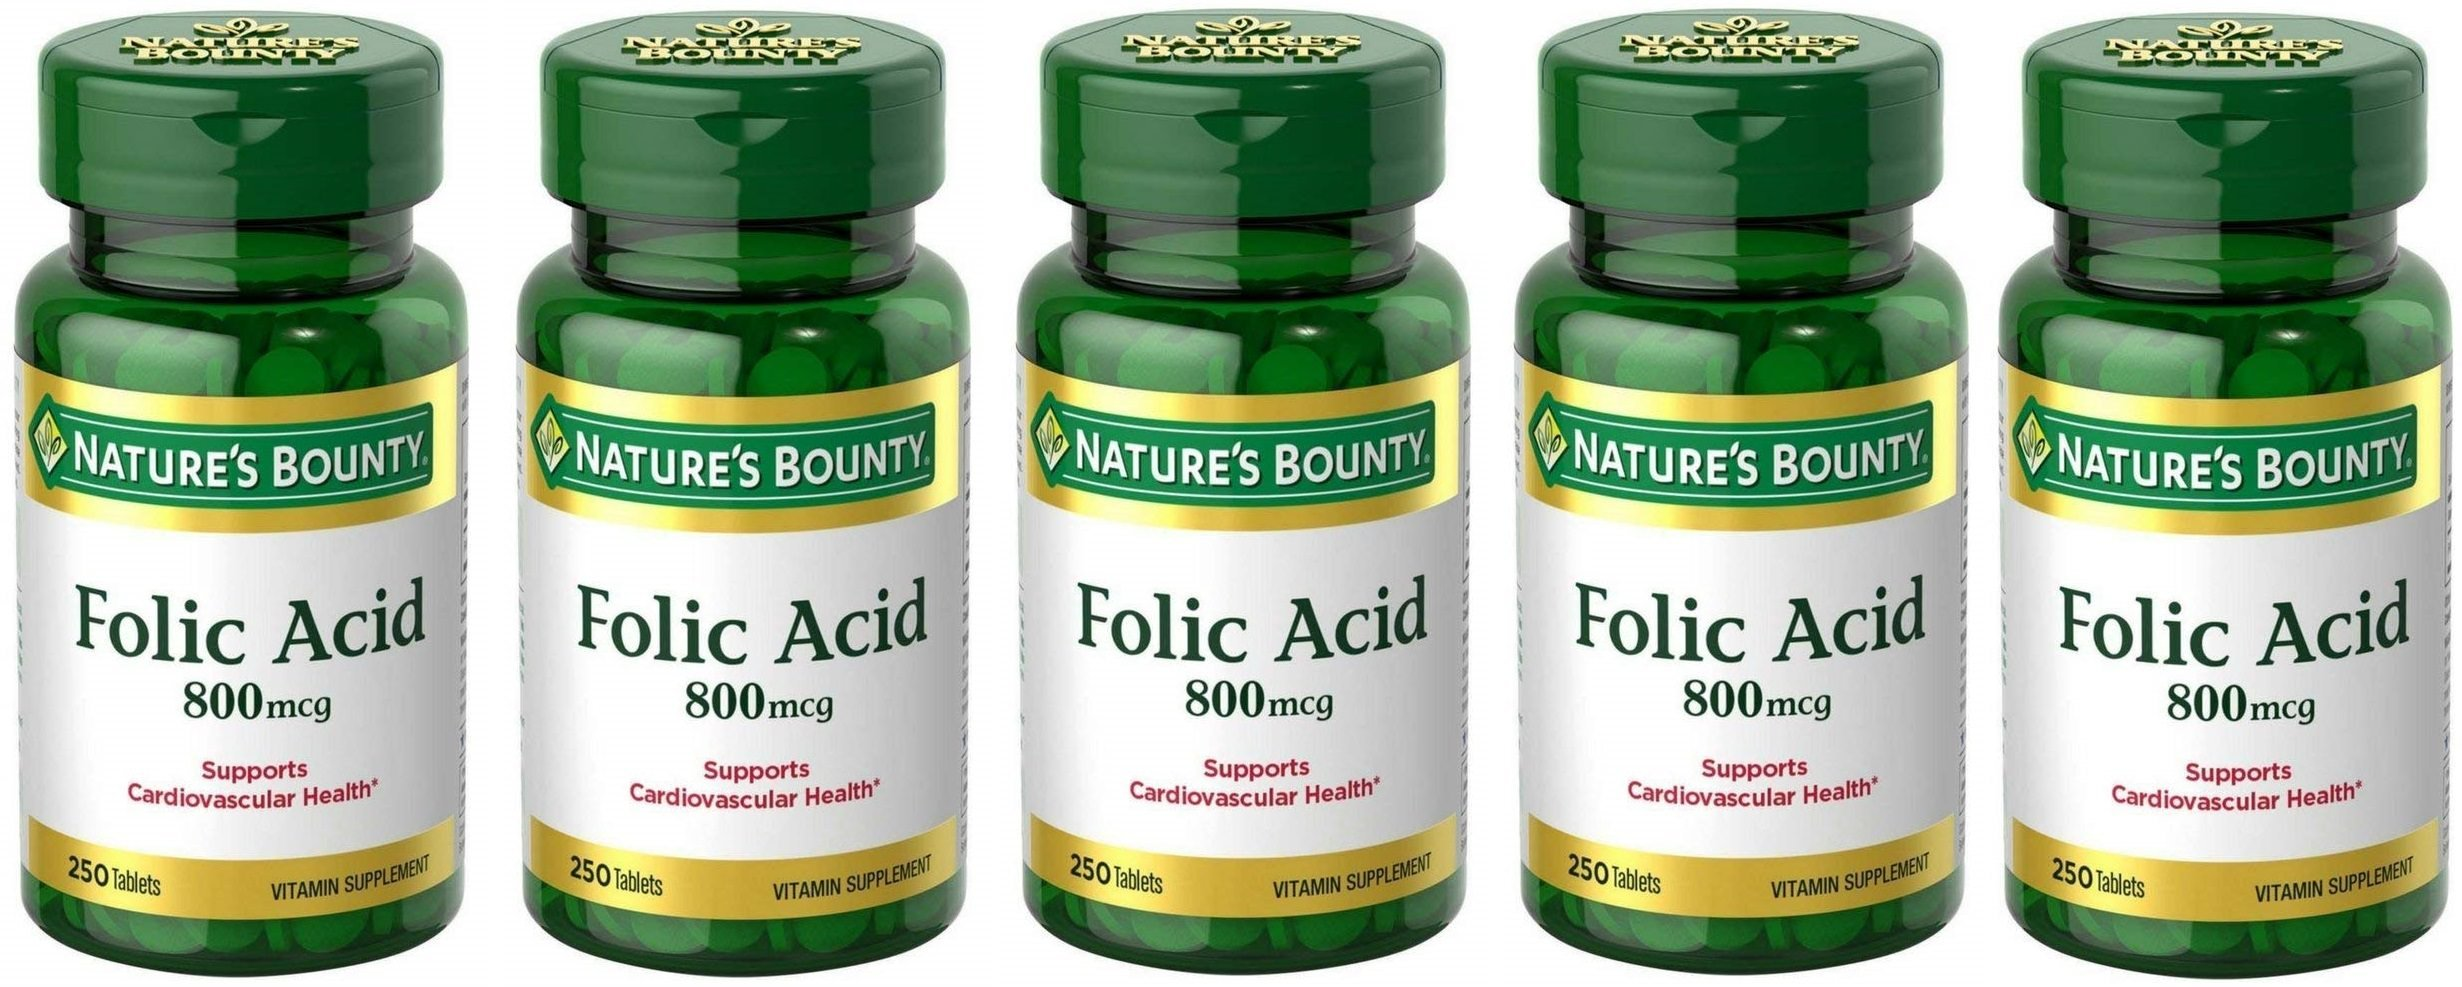 Folic Acid 800 mcg Tablets Maximum Strength, 5 Bottles (250 Count)